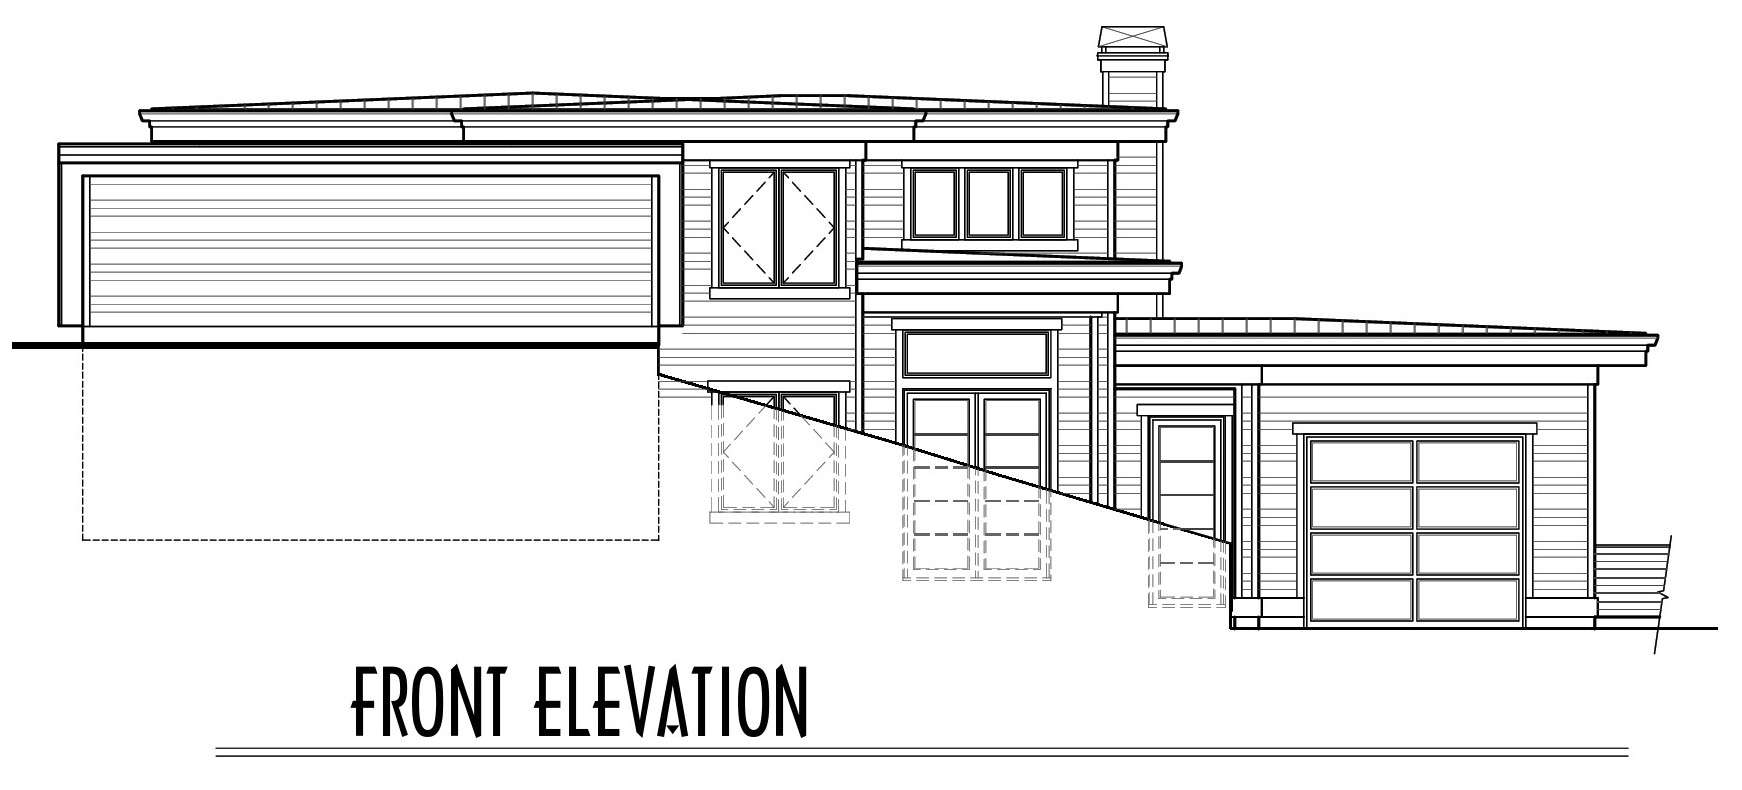 Awbrey Pointe - Lot 13 - Custom Duplex (PS-1550-18) - Final Plan SET-Front Elevation Sales.jpg